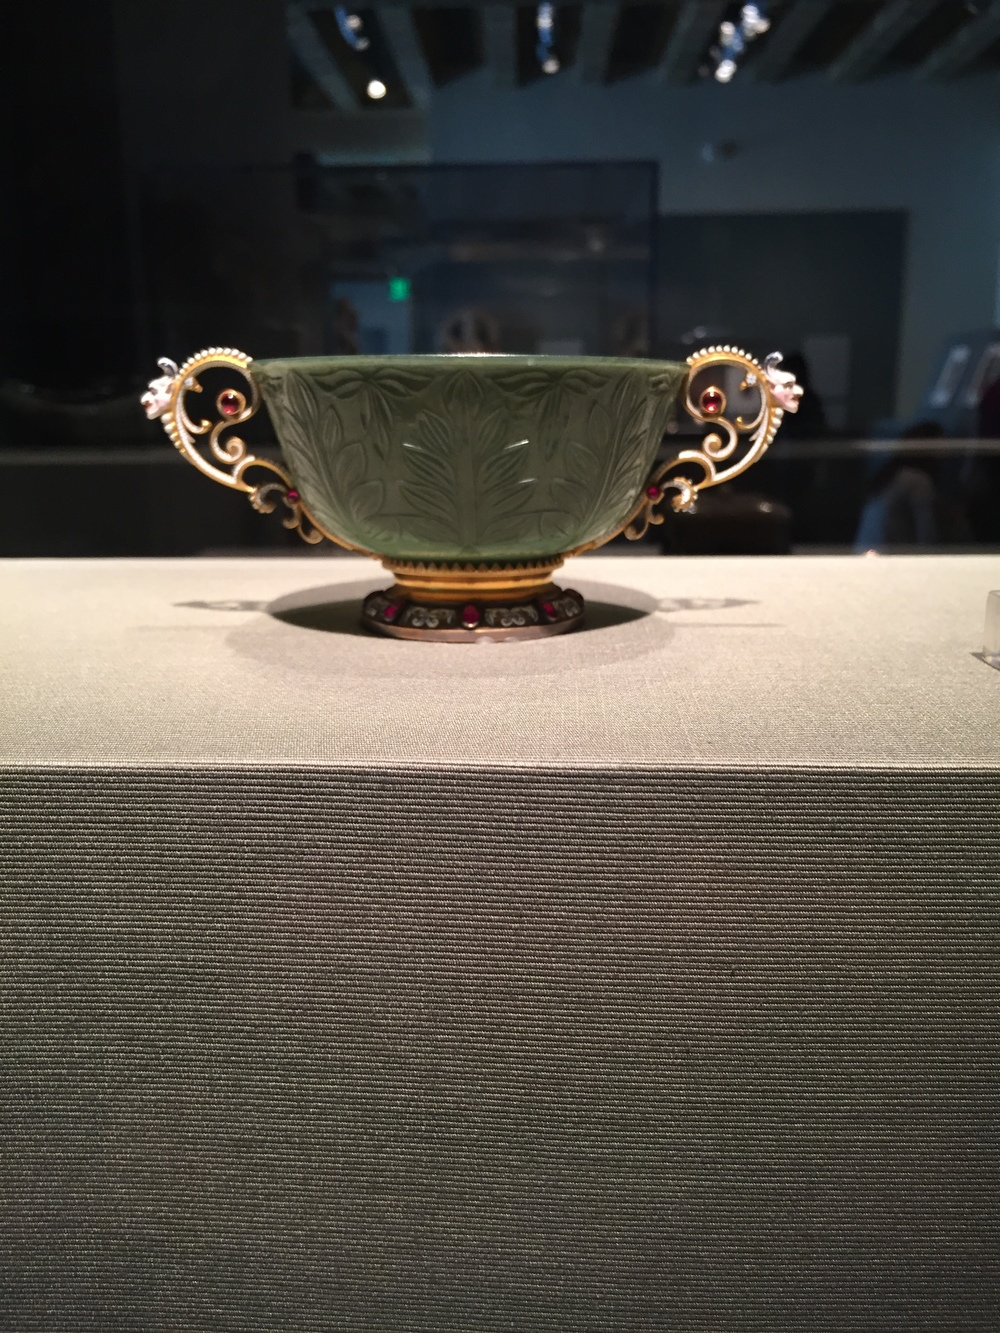 Cup with nineteenth-century French fittings